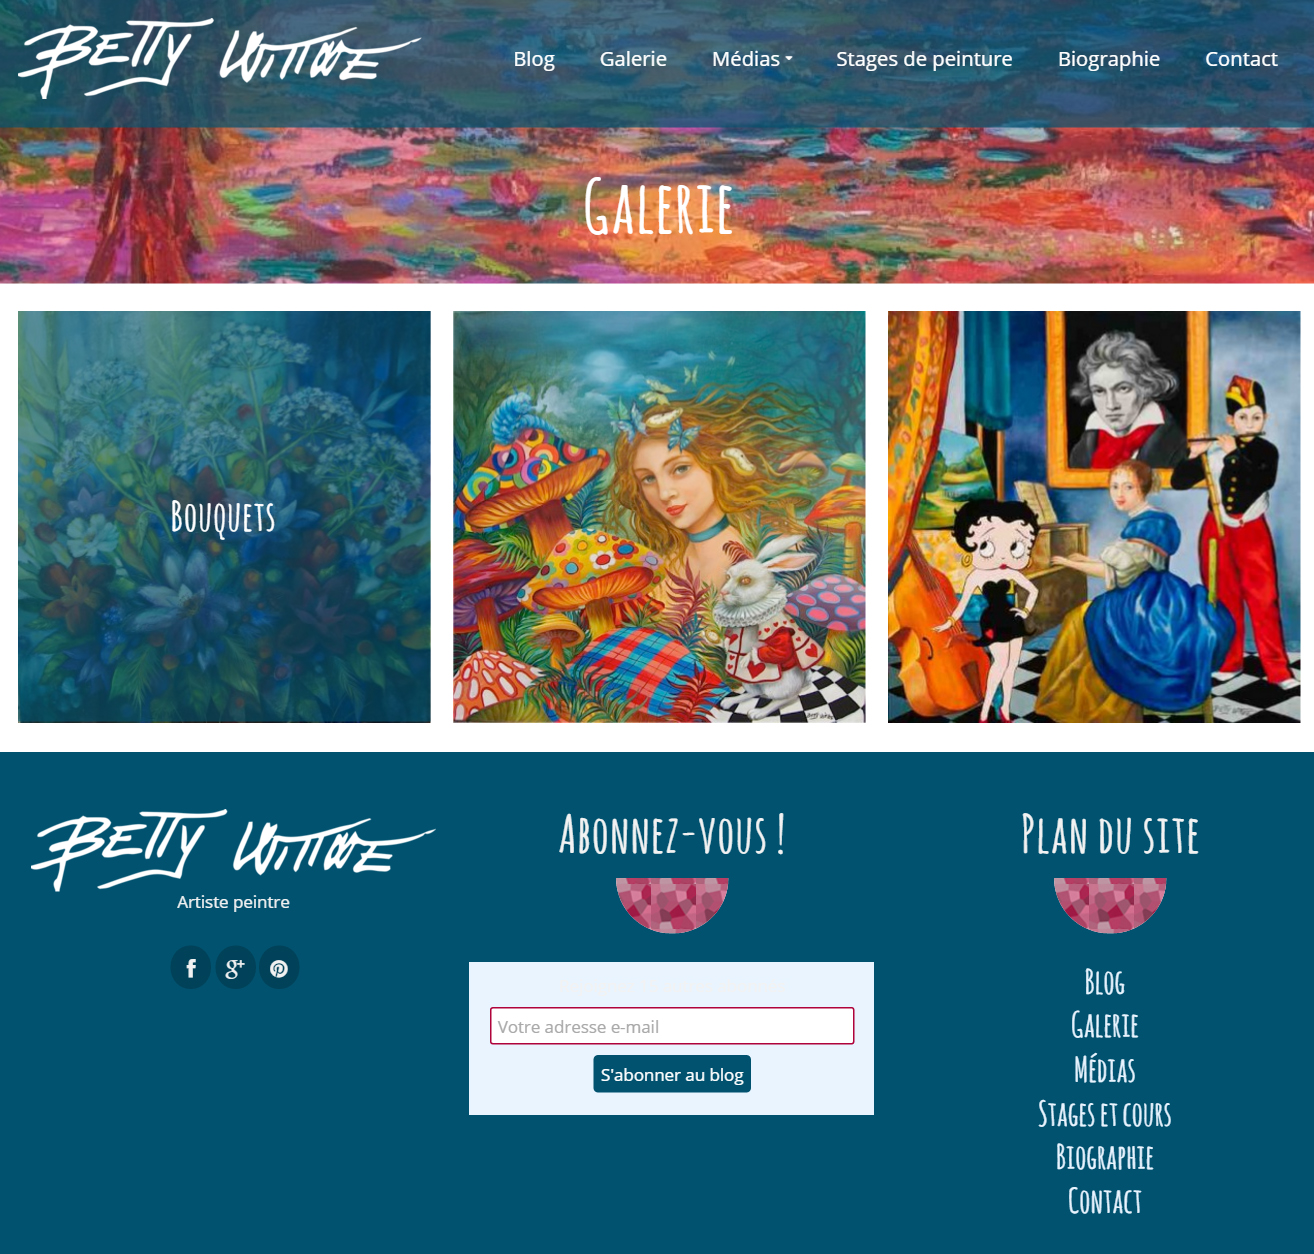 Site de Betty Wittwe